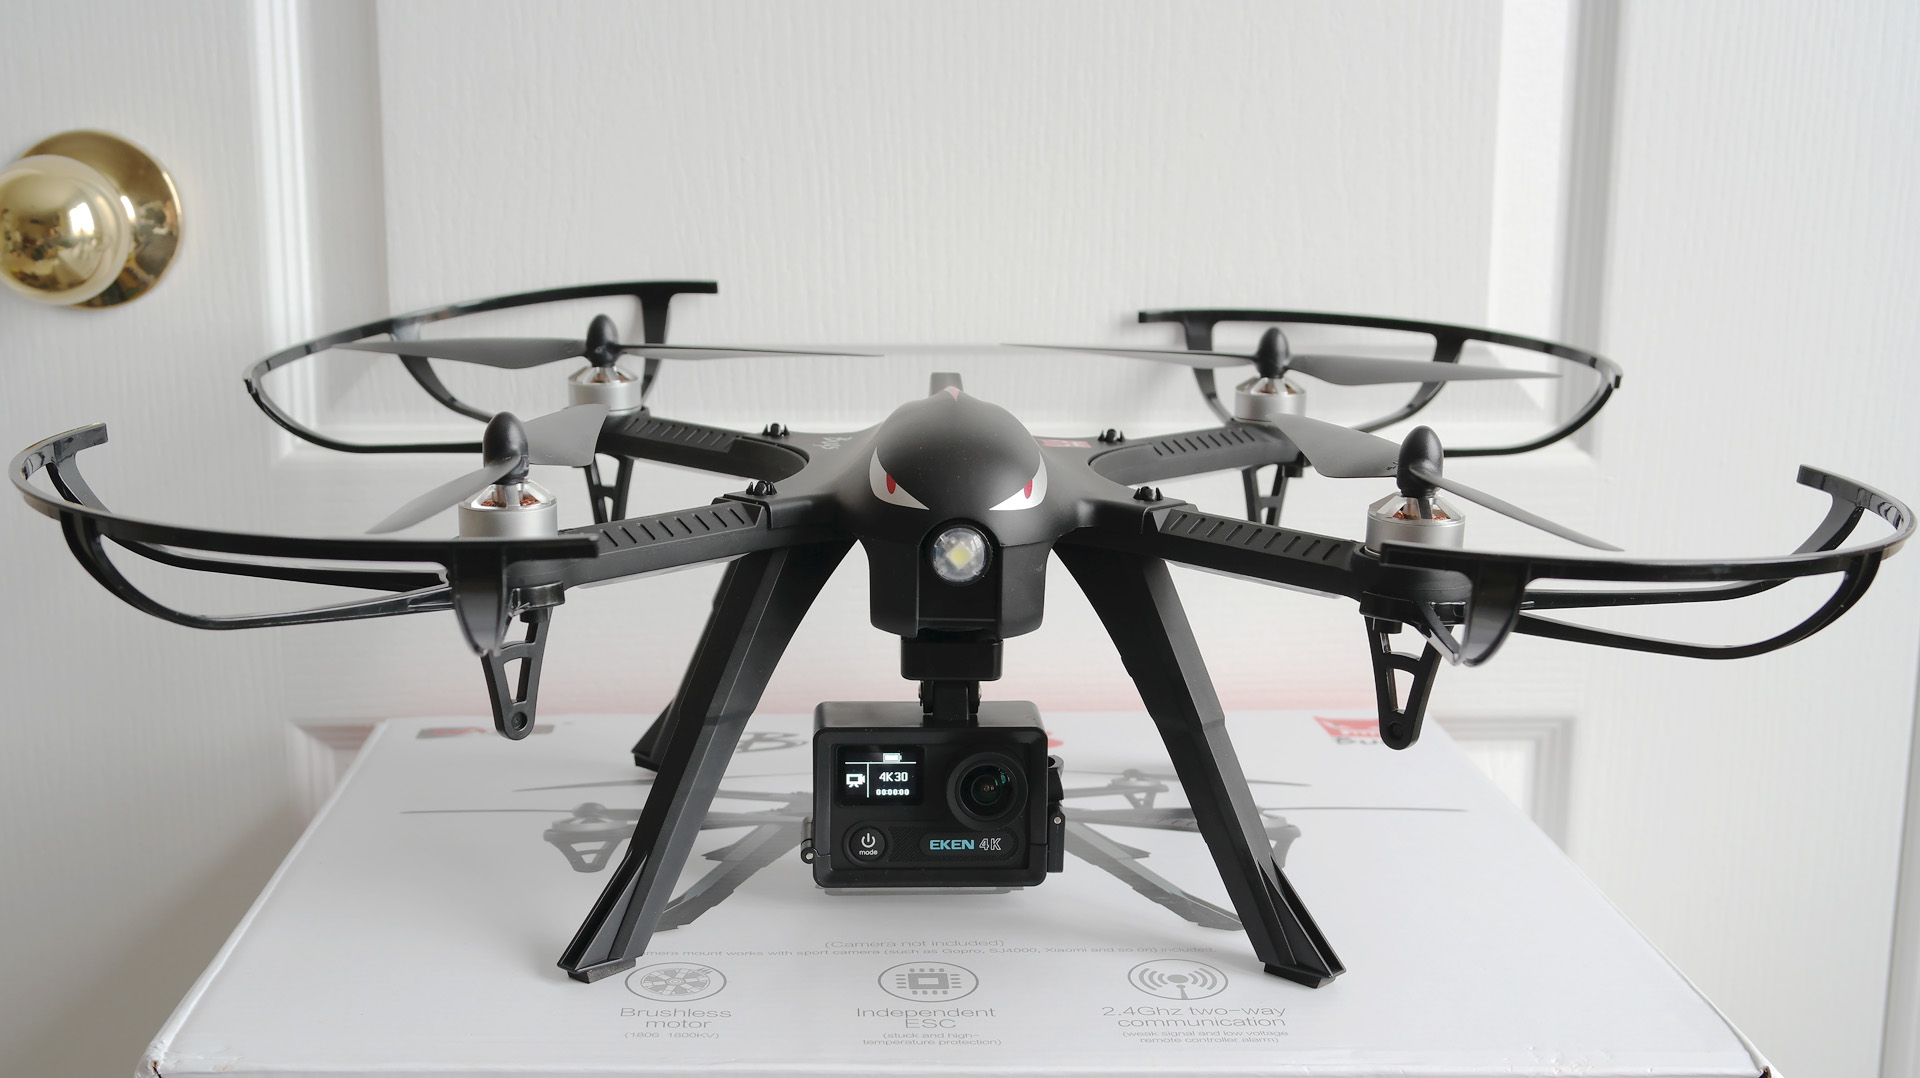 ModSynergy.com - Review 321 - MJX Bugs 3 Brushless Quadcopter Drone